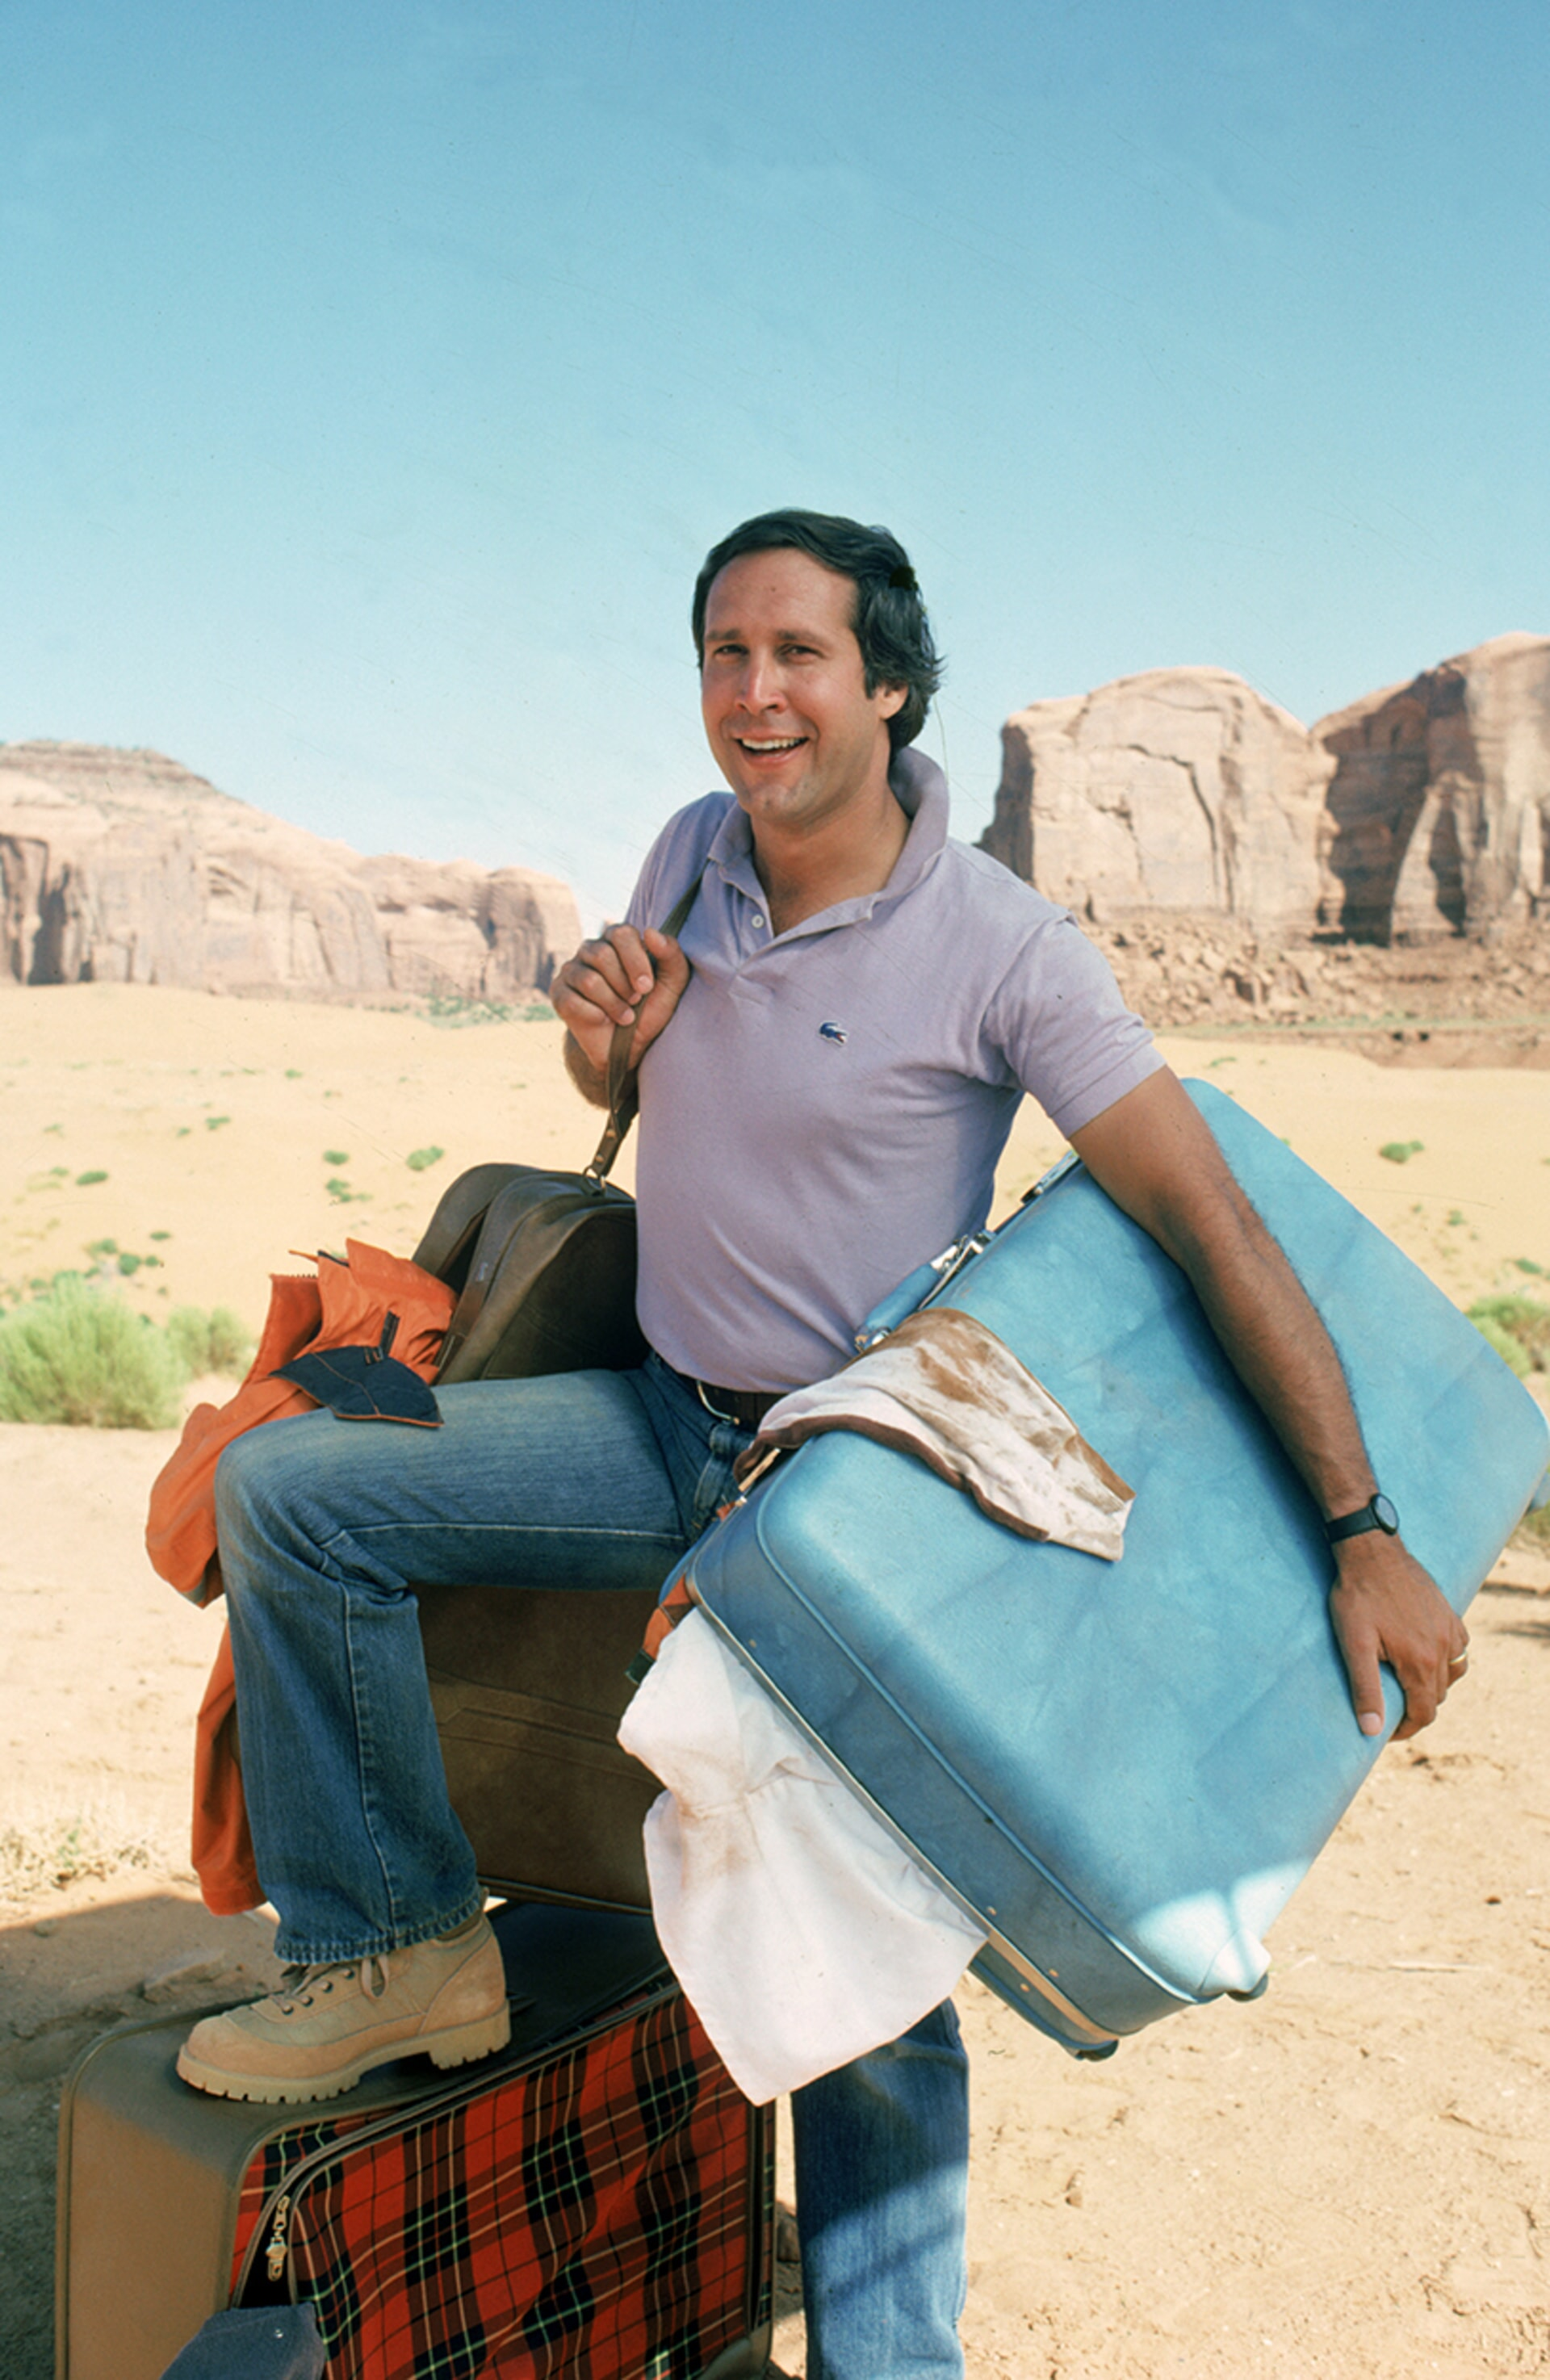 National Lampoon's Vacation - Image 3